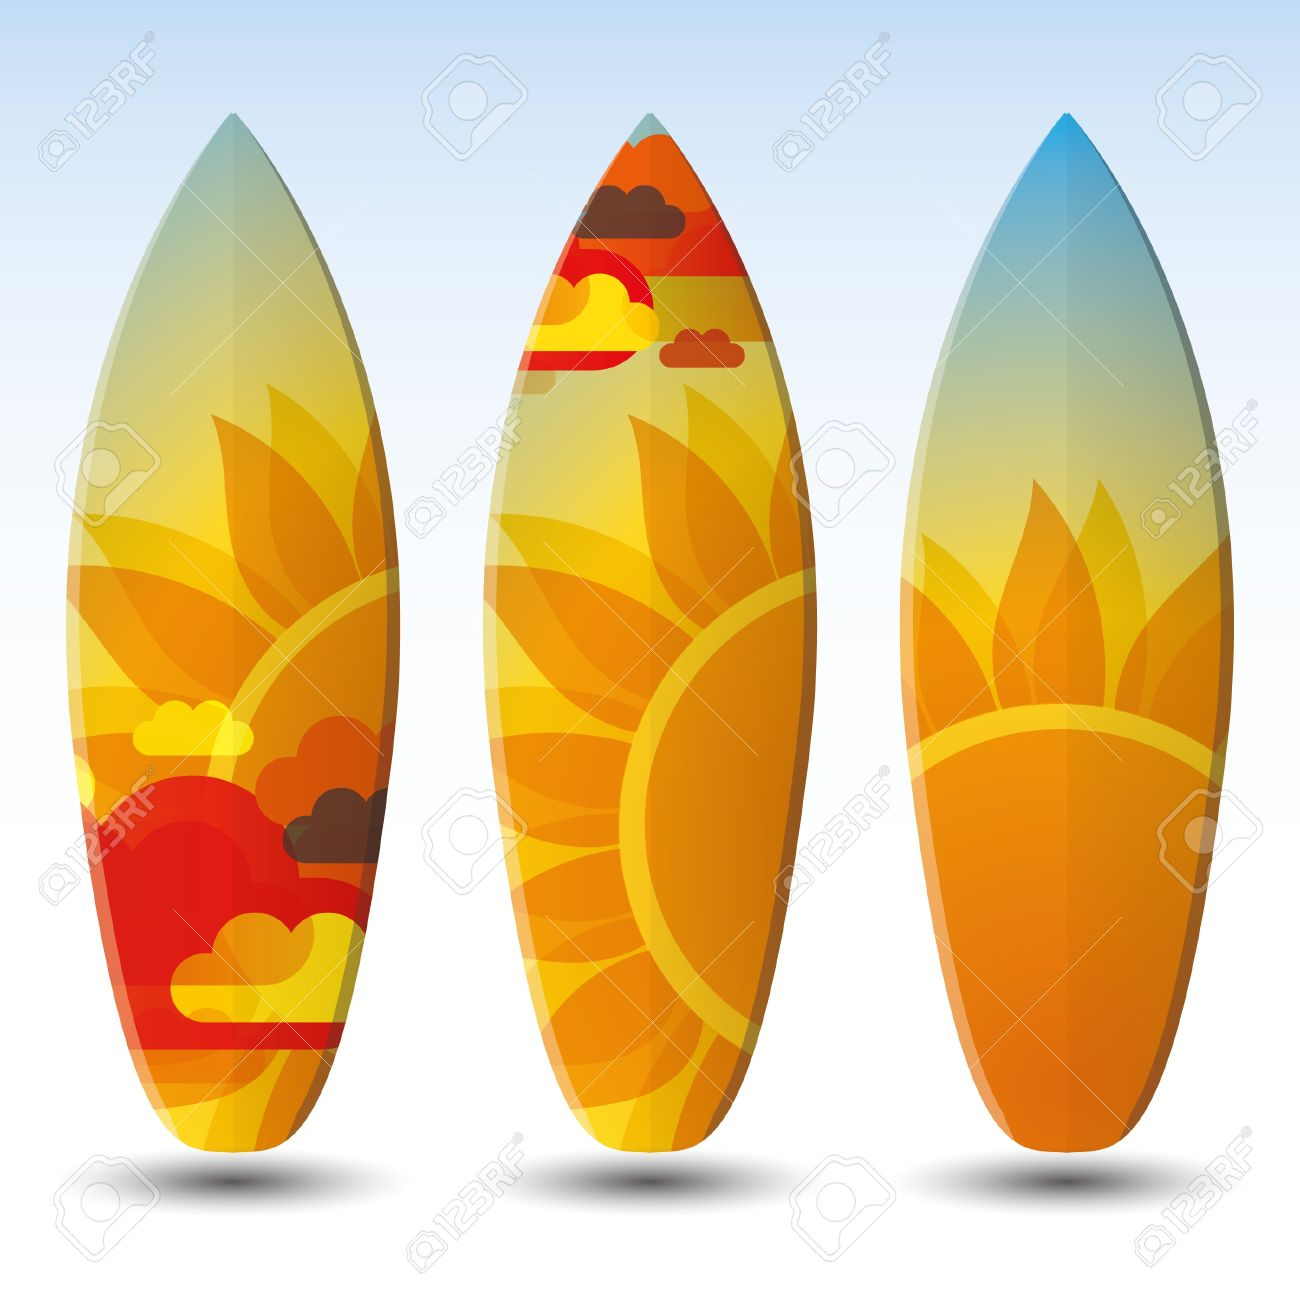 Surfboards Design Royalty Free Cliparts Vectors And Stock